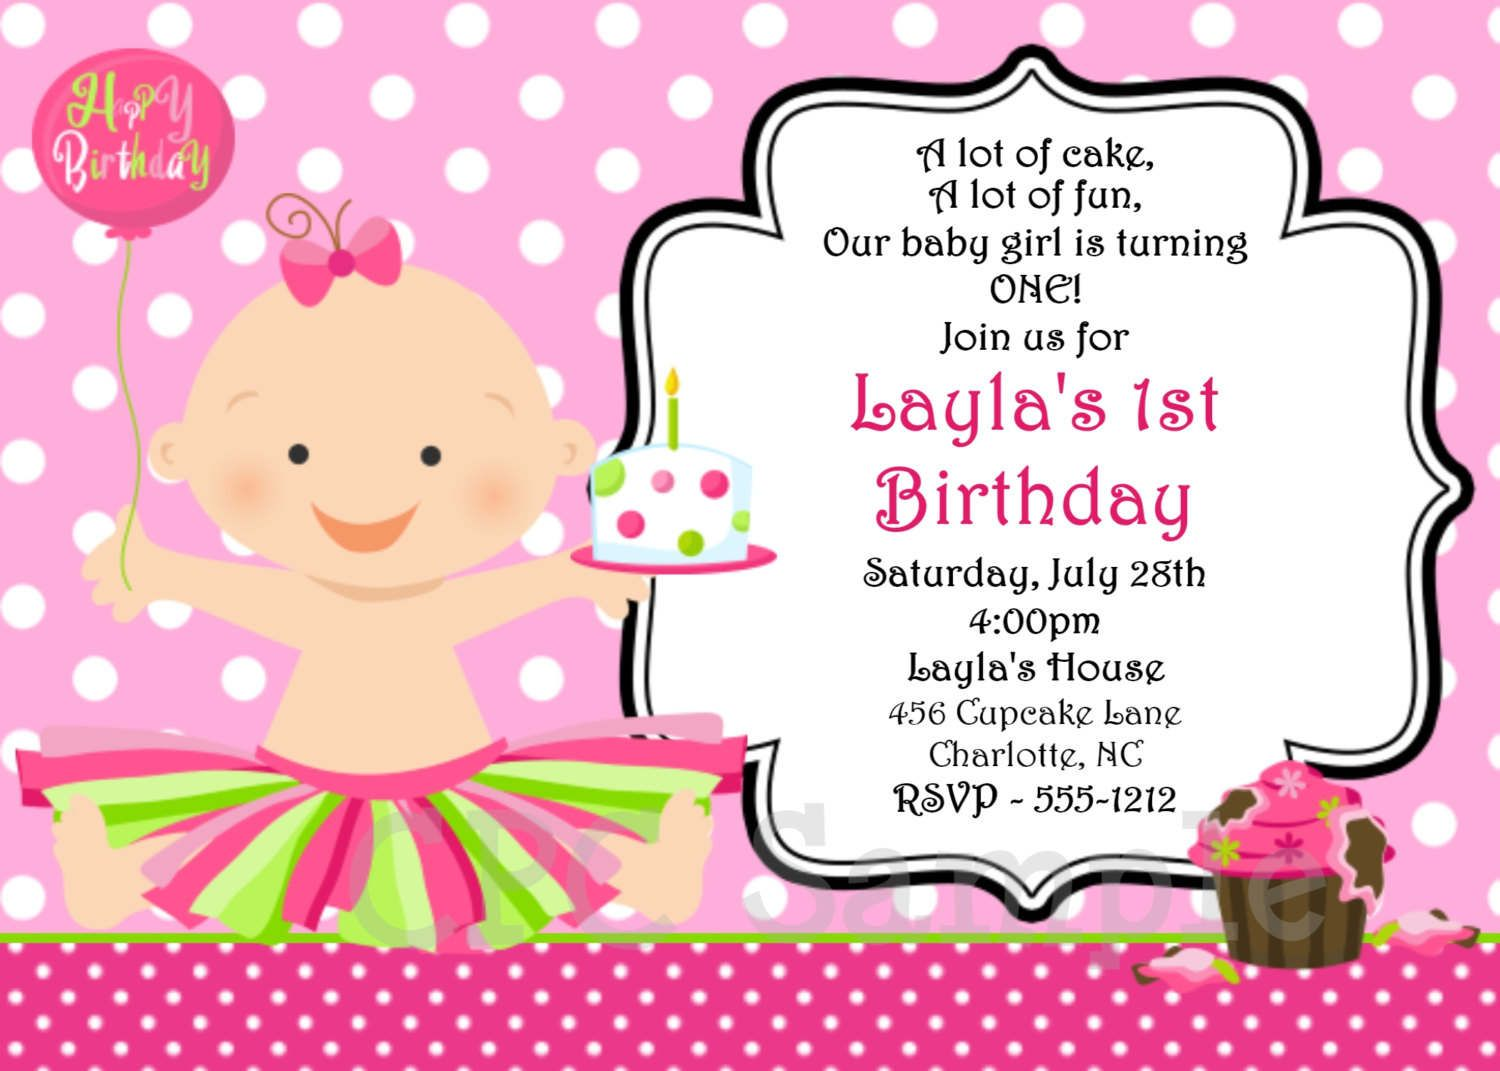 Birthday Invites Free Birthday Invitation Maker Images Downloads – Printable Birthday Invitations Online